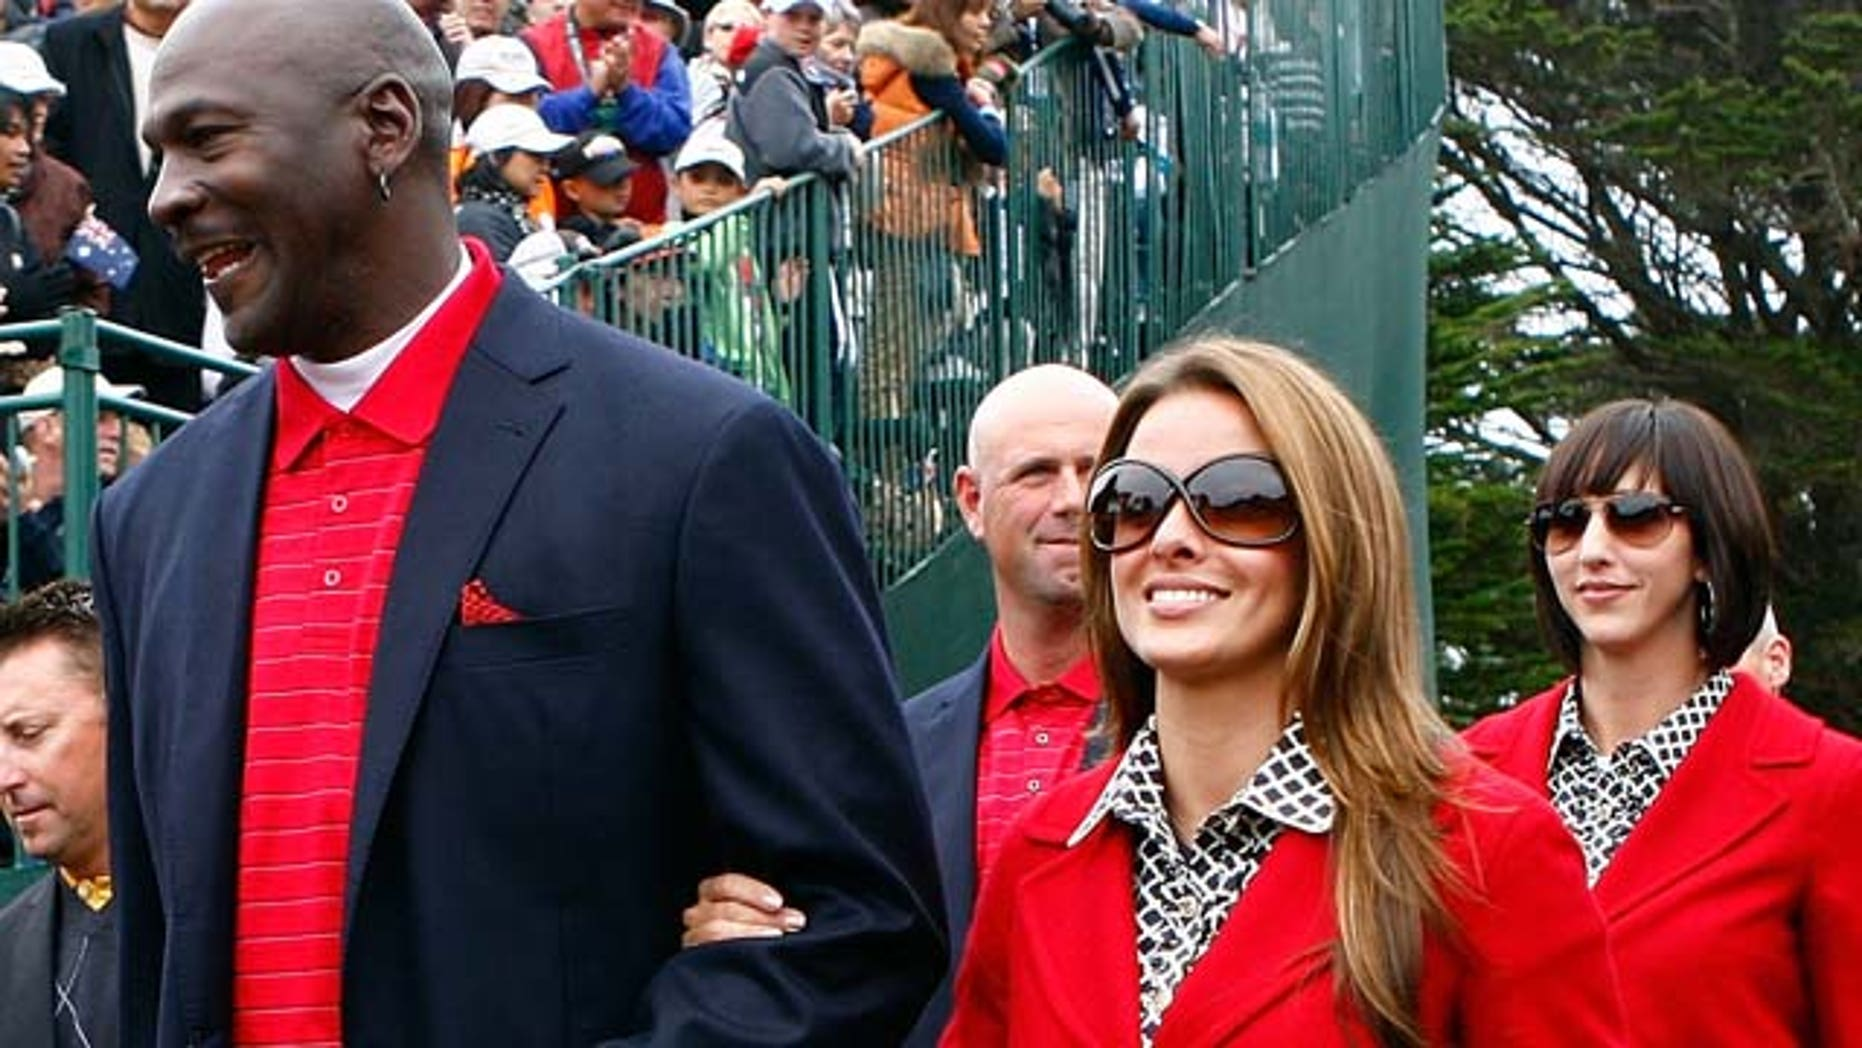 Oct.11, 2009:  Michael Jordan of the USA Team walks with his girlfriend Yvette Prieto to the closing ceremonies during the Final Round Singles Matches of The Presidents Cup at Harding Park Golf Course in San Francisco, Calif.